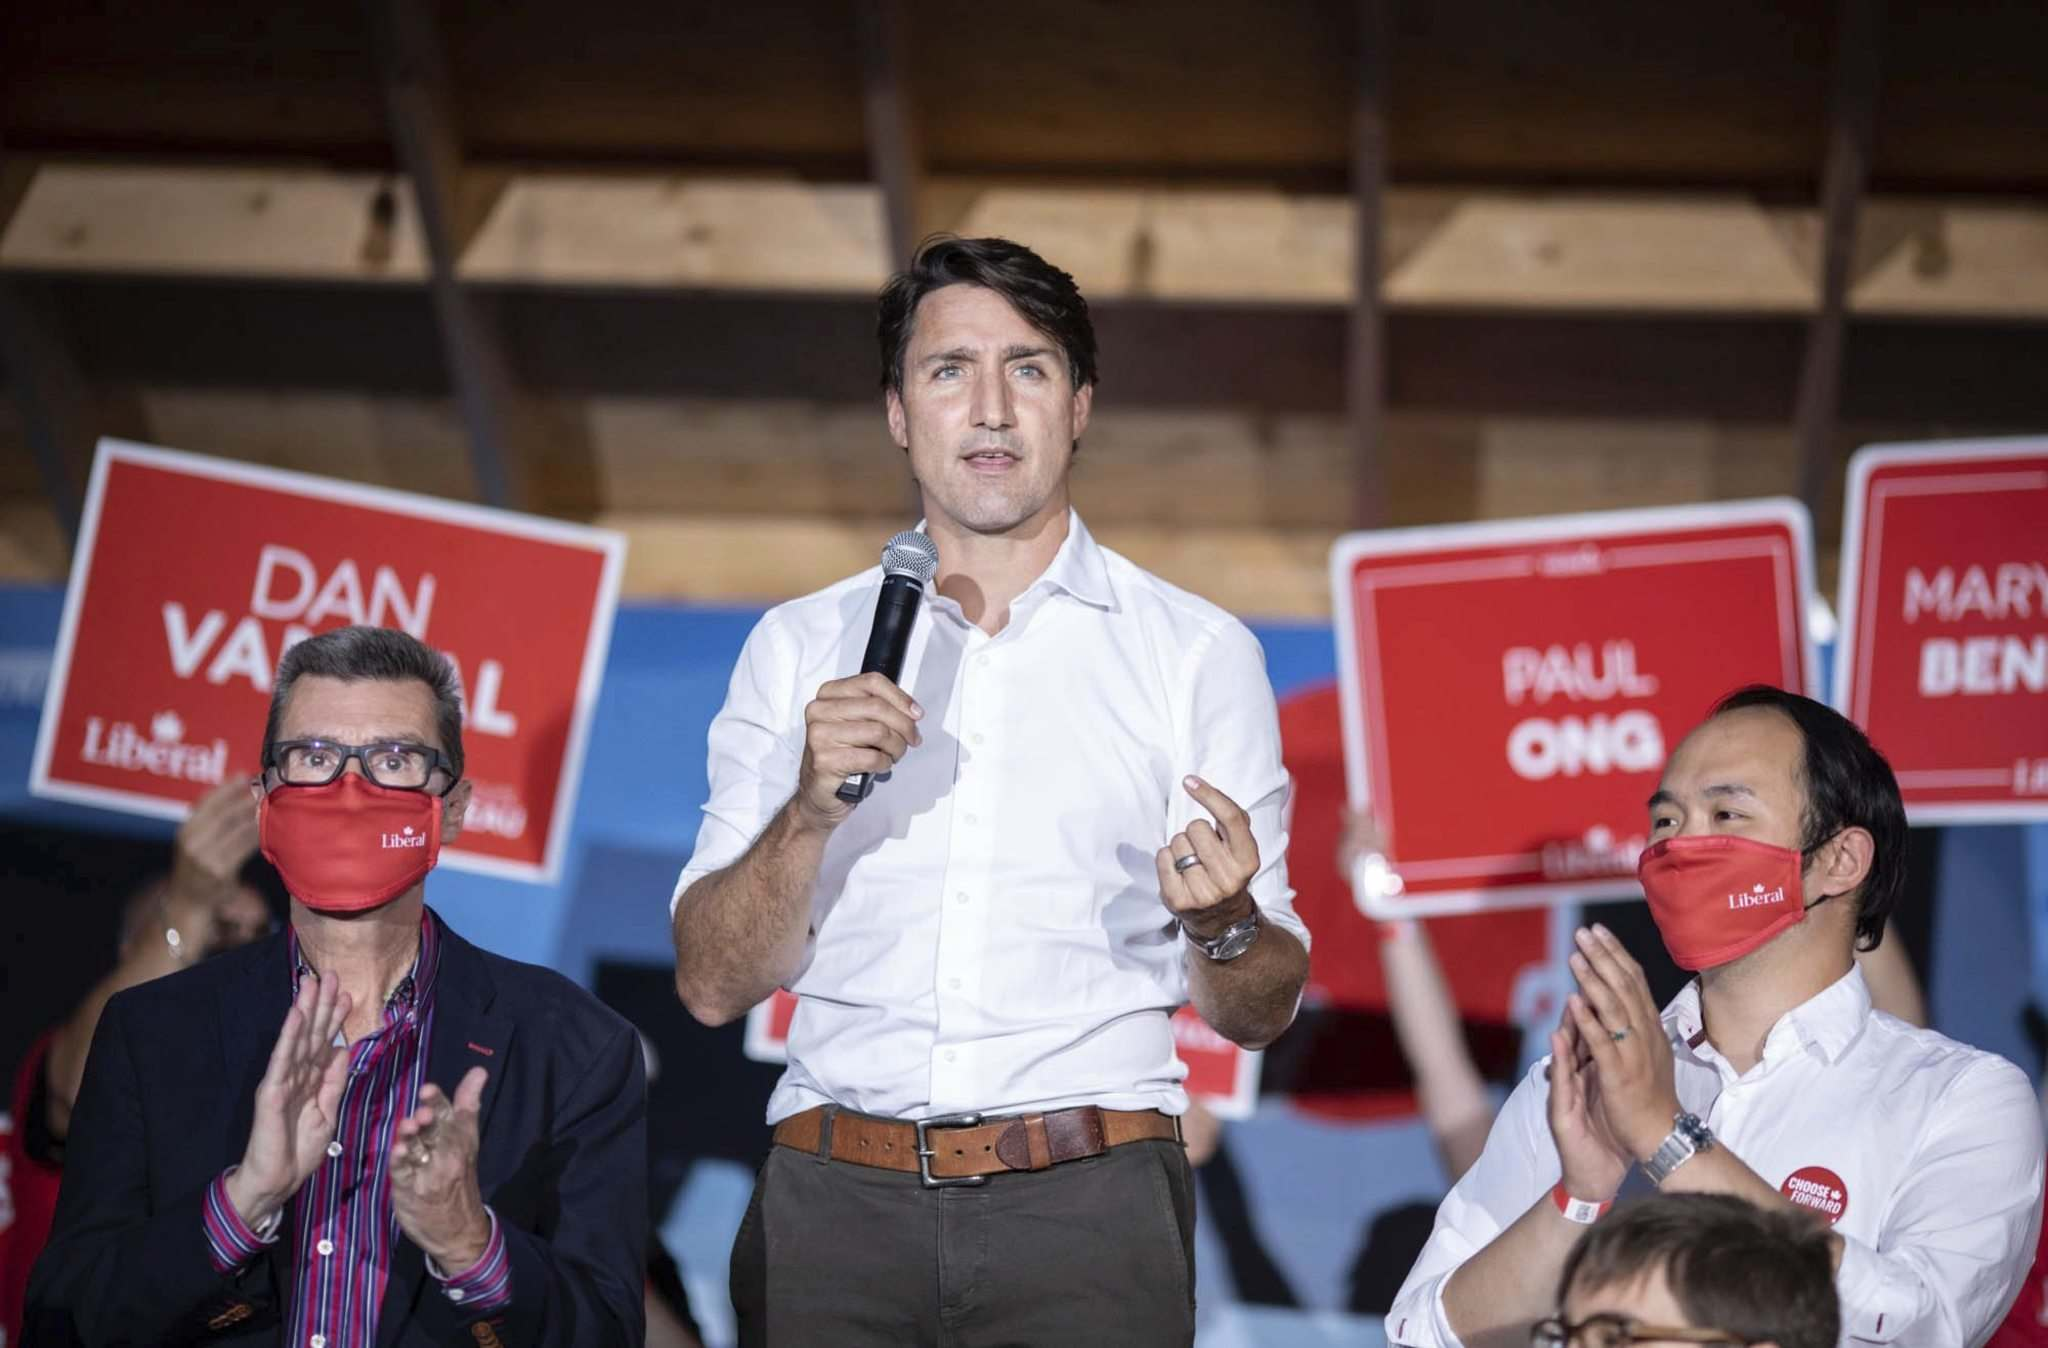 Prime Minister Justin Trudeau gives a speech surrounded by Liberal candidates at The Blue Note Park in Winnipeg during a campaign stop in the city on the eve of the federal election. (Jessica Lee / Winnipeg Free Press)</p>